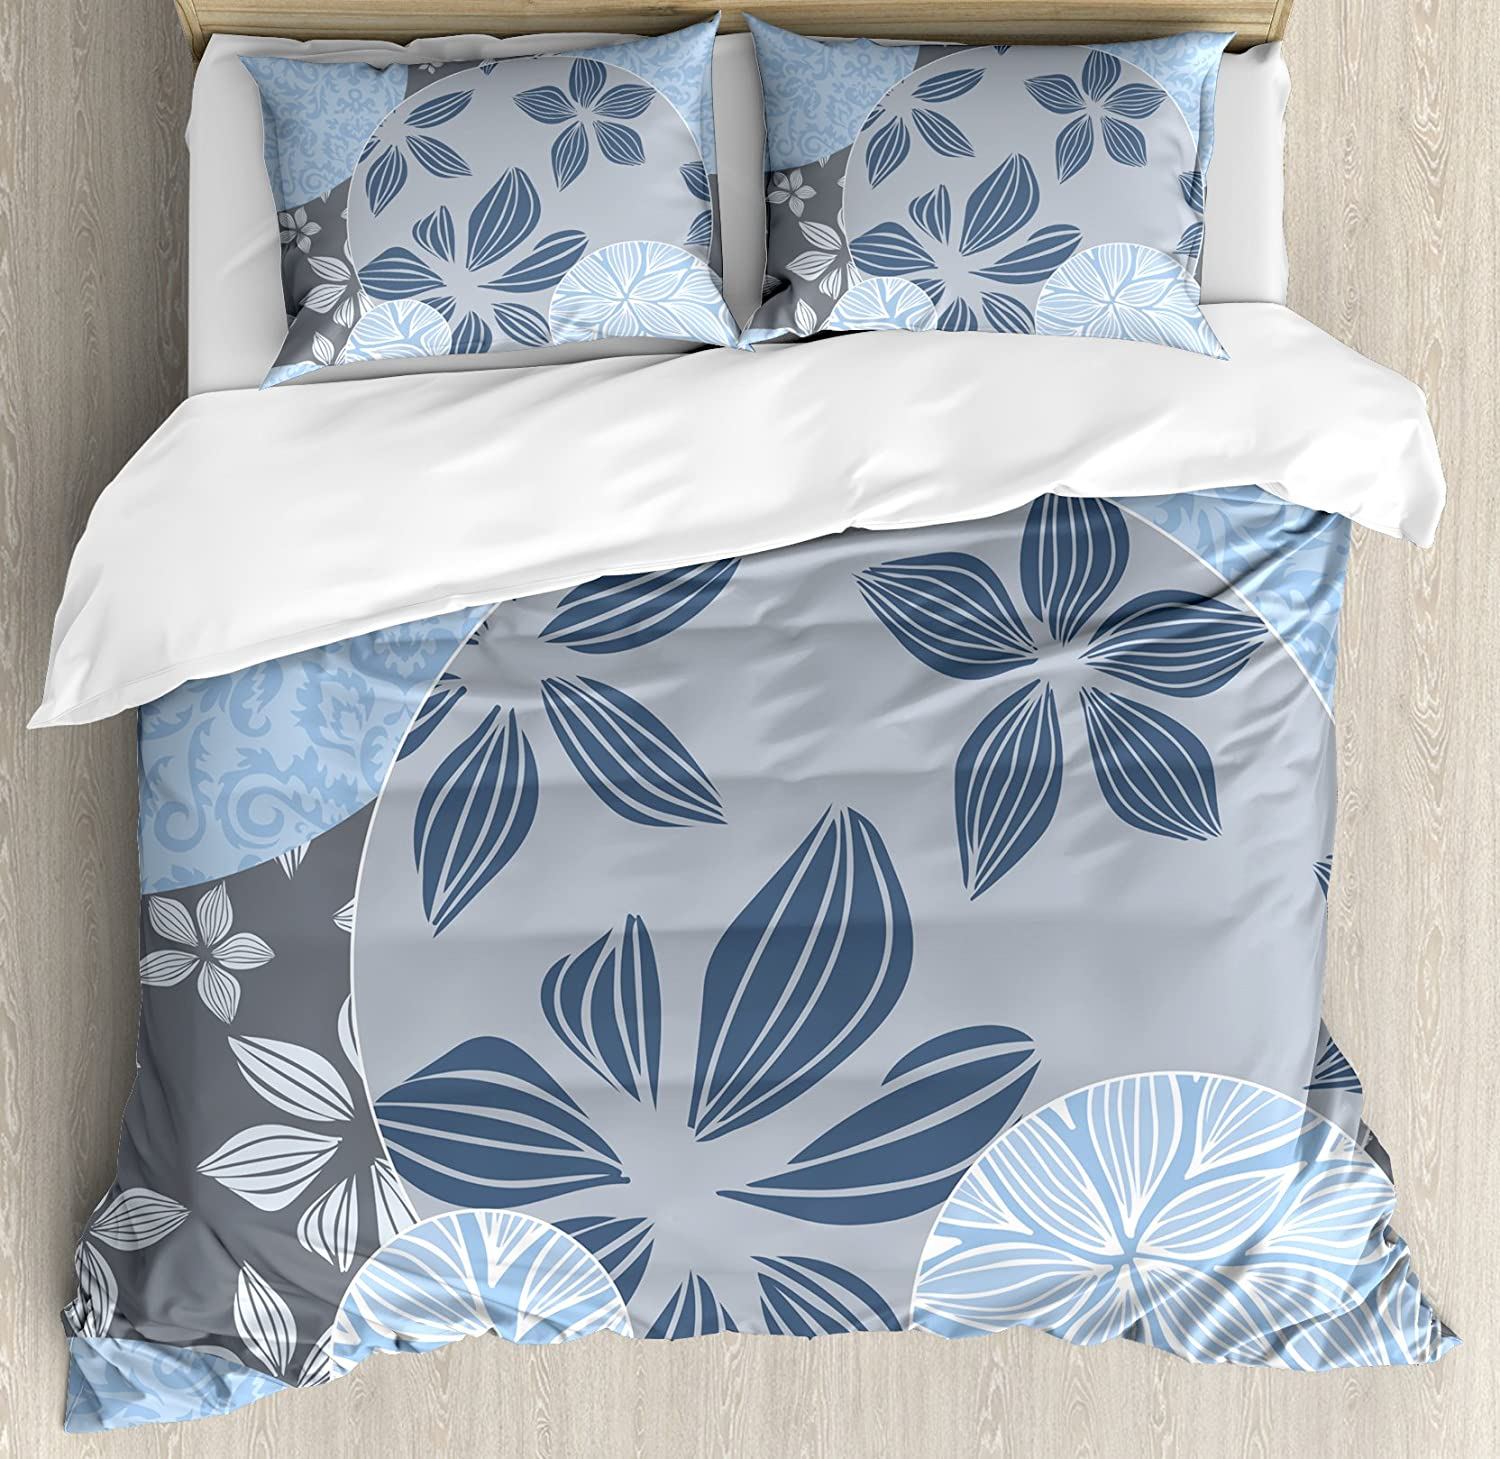 Flower Queen Size Duvet Cover Set by Ambesonne, Tropical Blooms inside Circular Shaped Forms Swirled Petals Elegance Pattern, Decorative 3 Piece Bedding Set with 2 Pillow Shams, Light bluee Grey